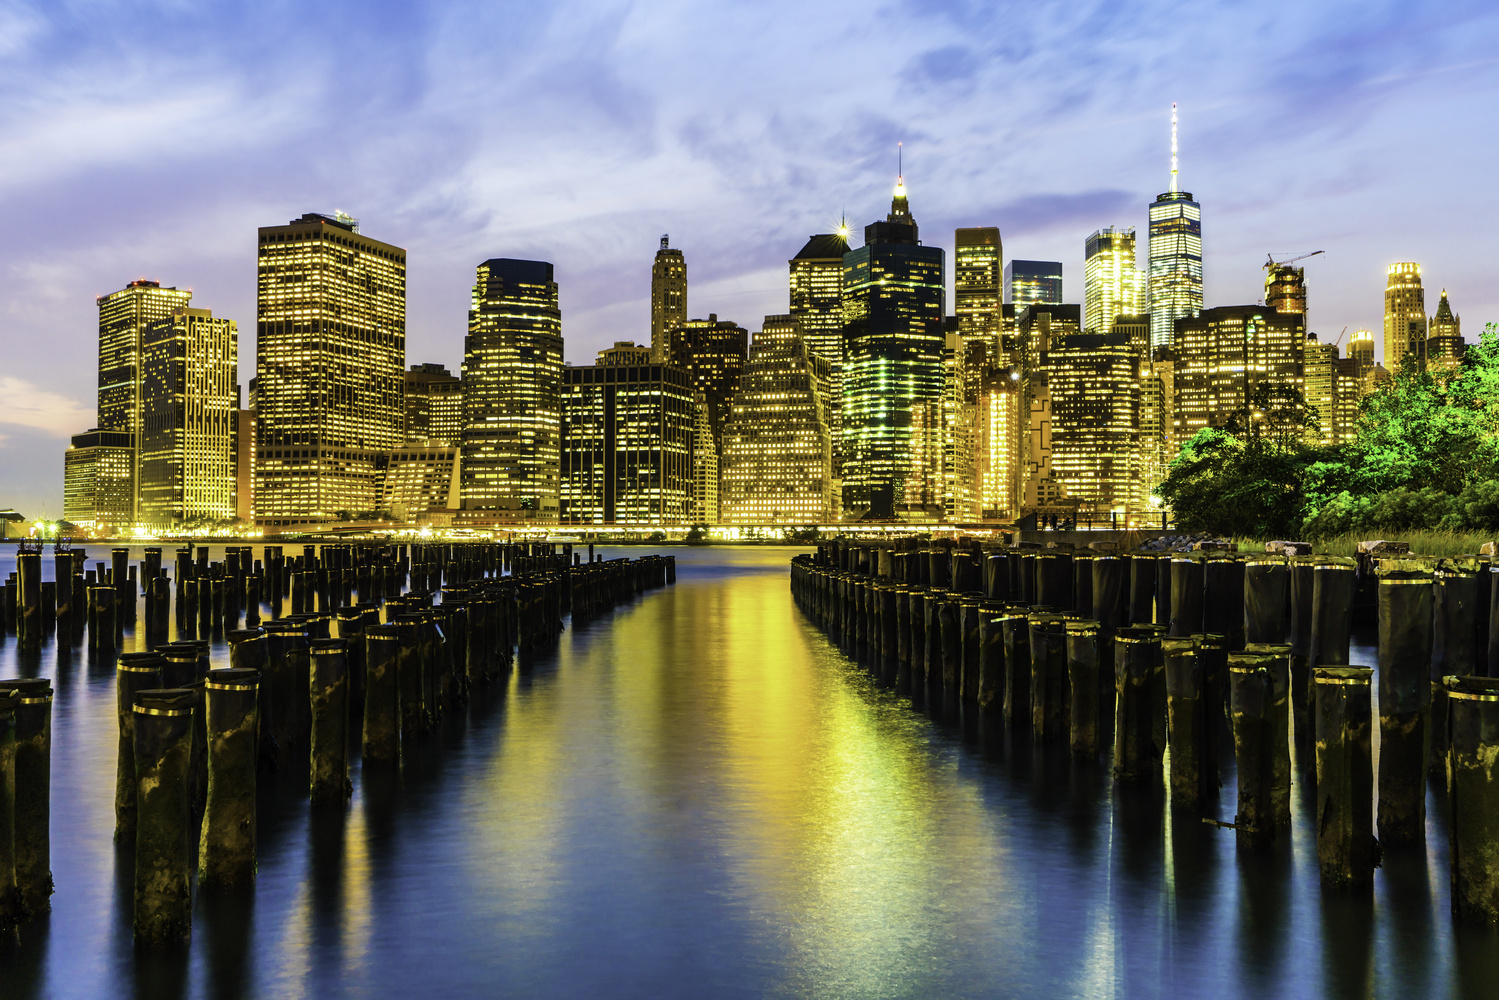 Piering over the East River by Michael Giacobbe